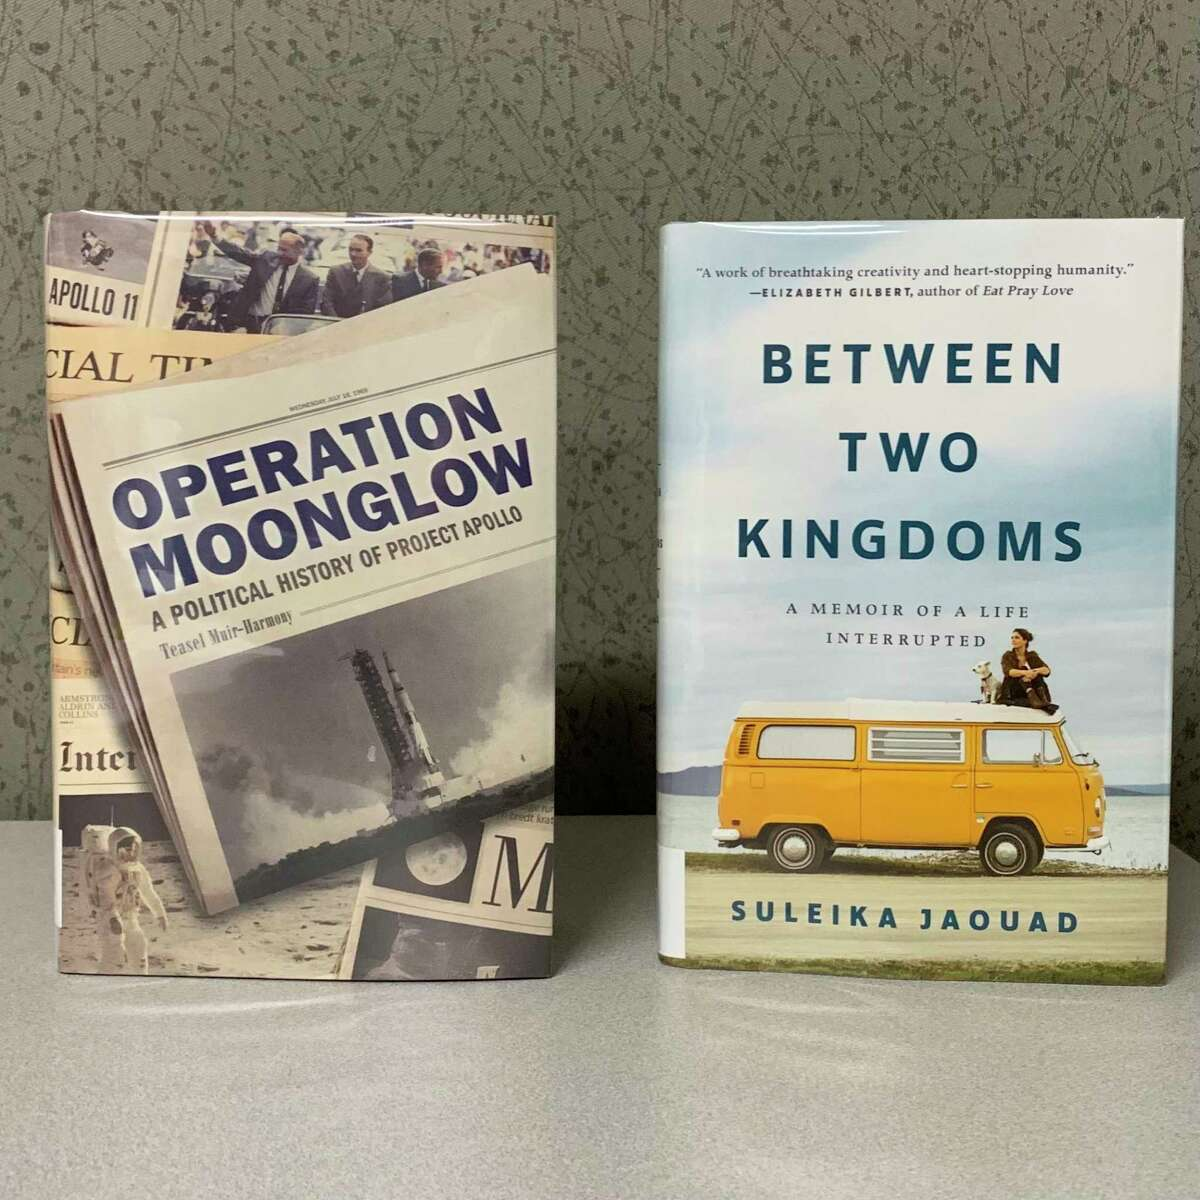 """""""Between Two Kingdoms: A Memoir of a Life Interrupted"""" by Suleika Jaouad is a memoir of a young woman just starting out, only to be brought up short by a cancer diagnosis. After working so hard to survive, the author now tells her story on beginning to live again. (Courtesy photo)"""